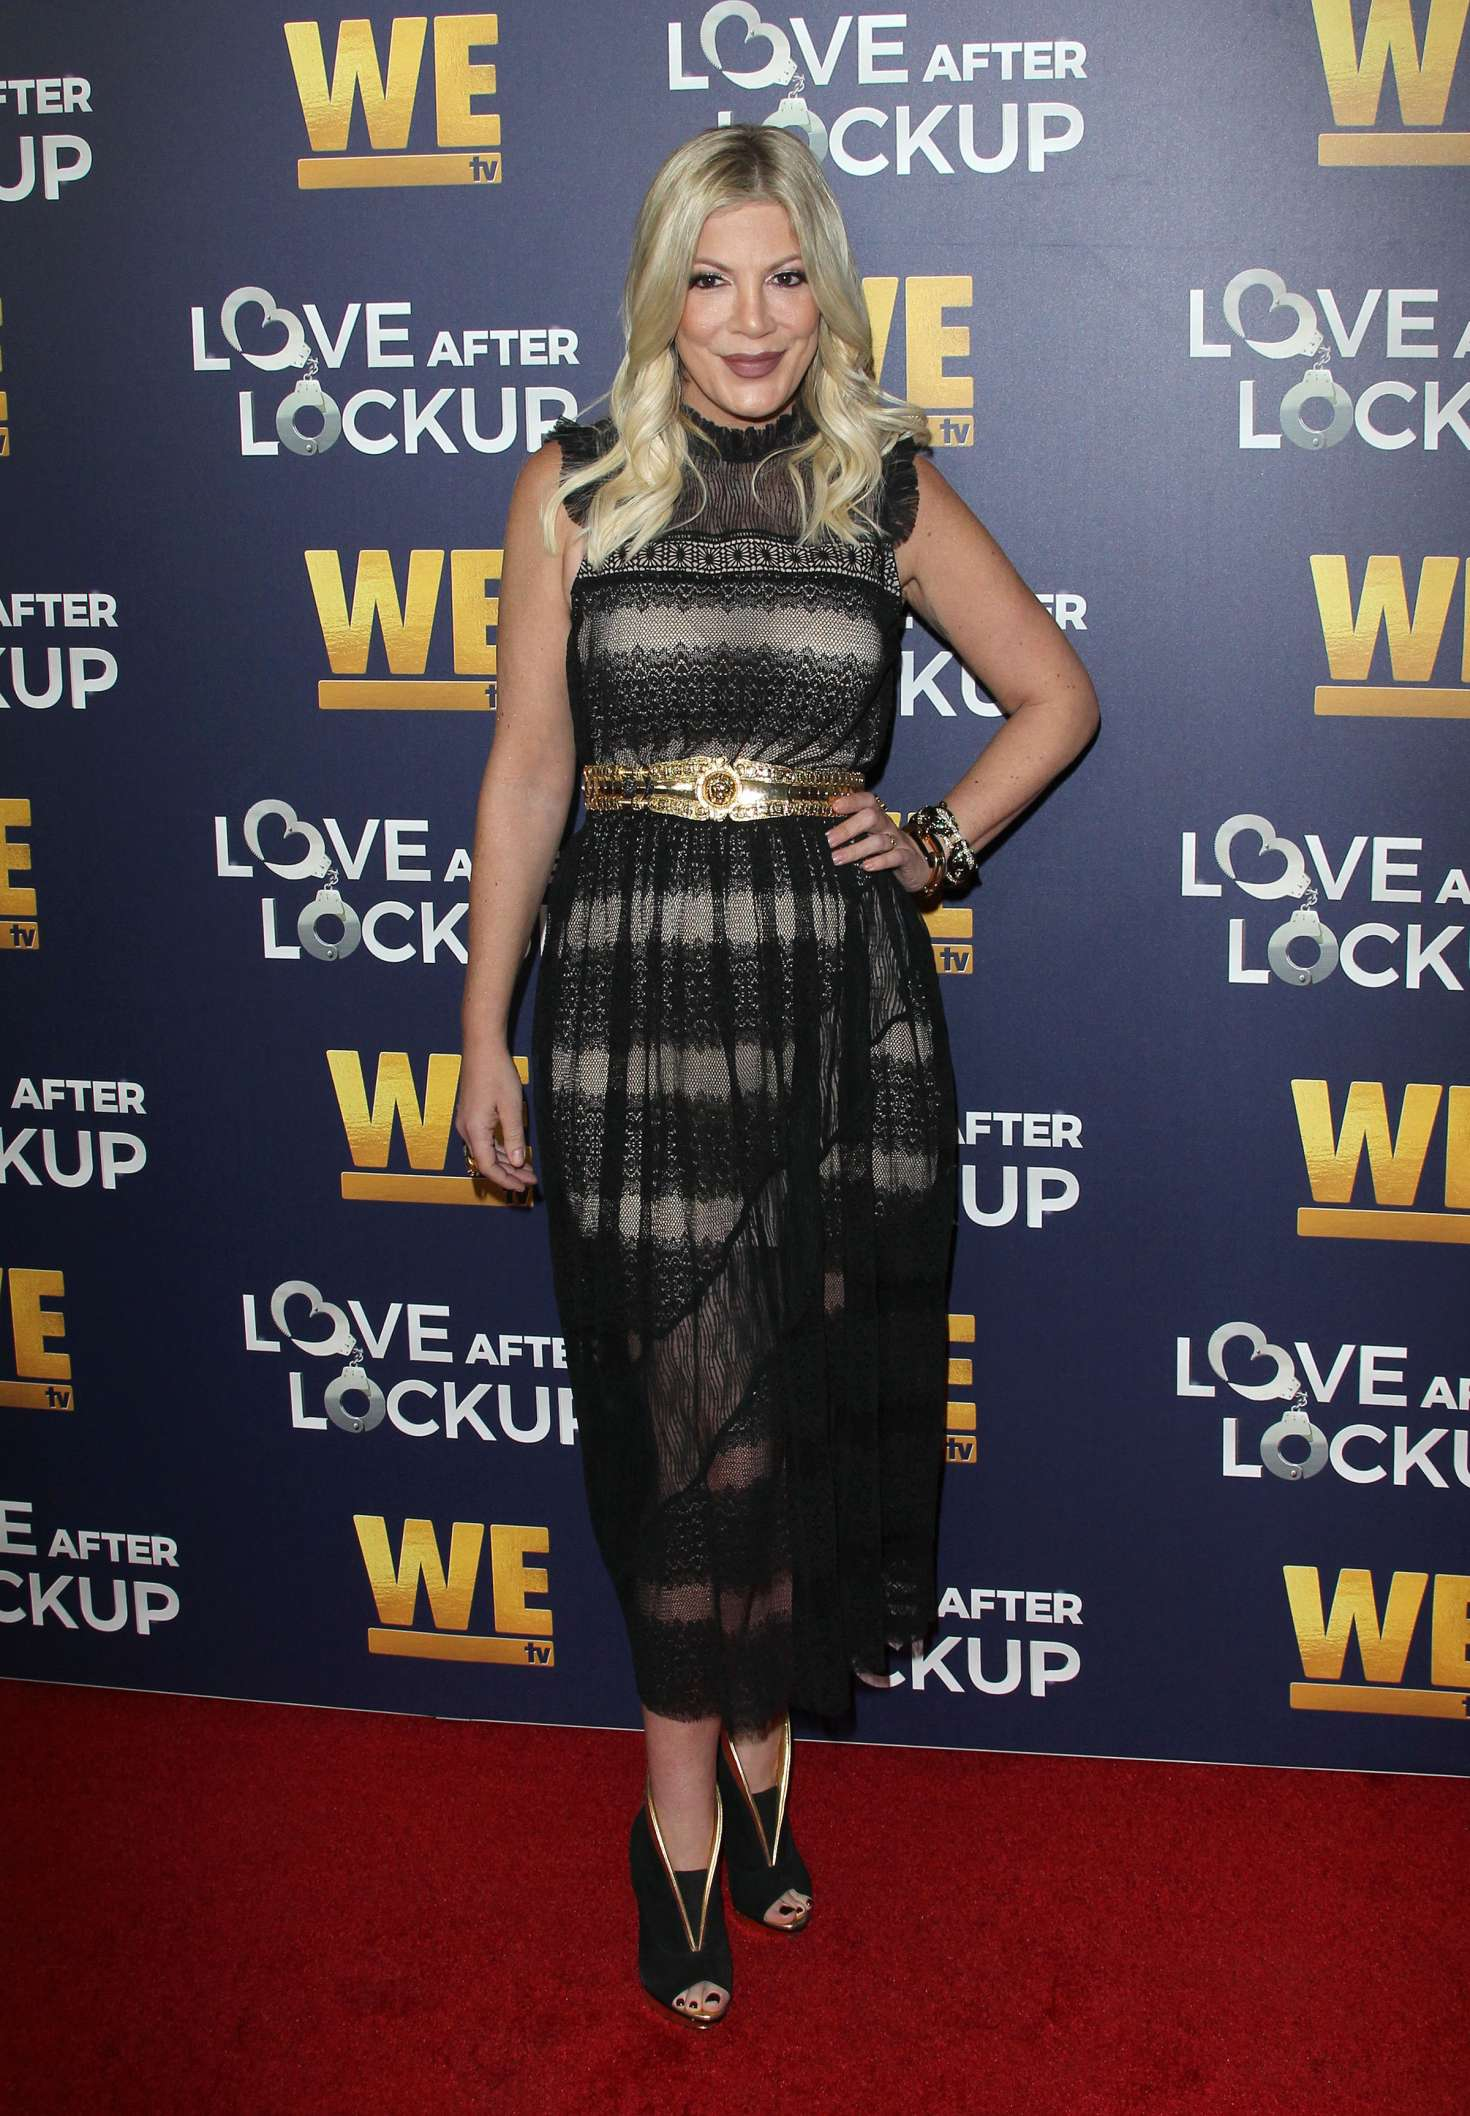 Tori Spelling 2018 : Tori Spelling: Love After Lockup Panel -06